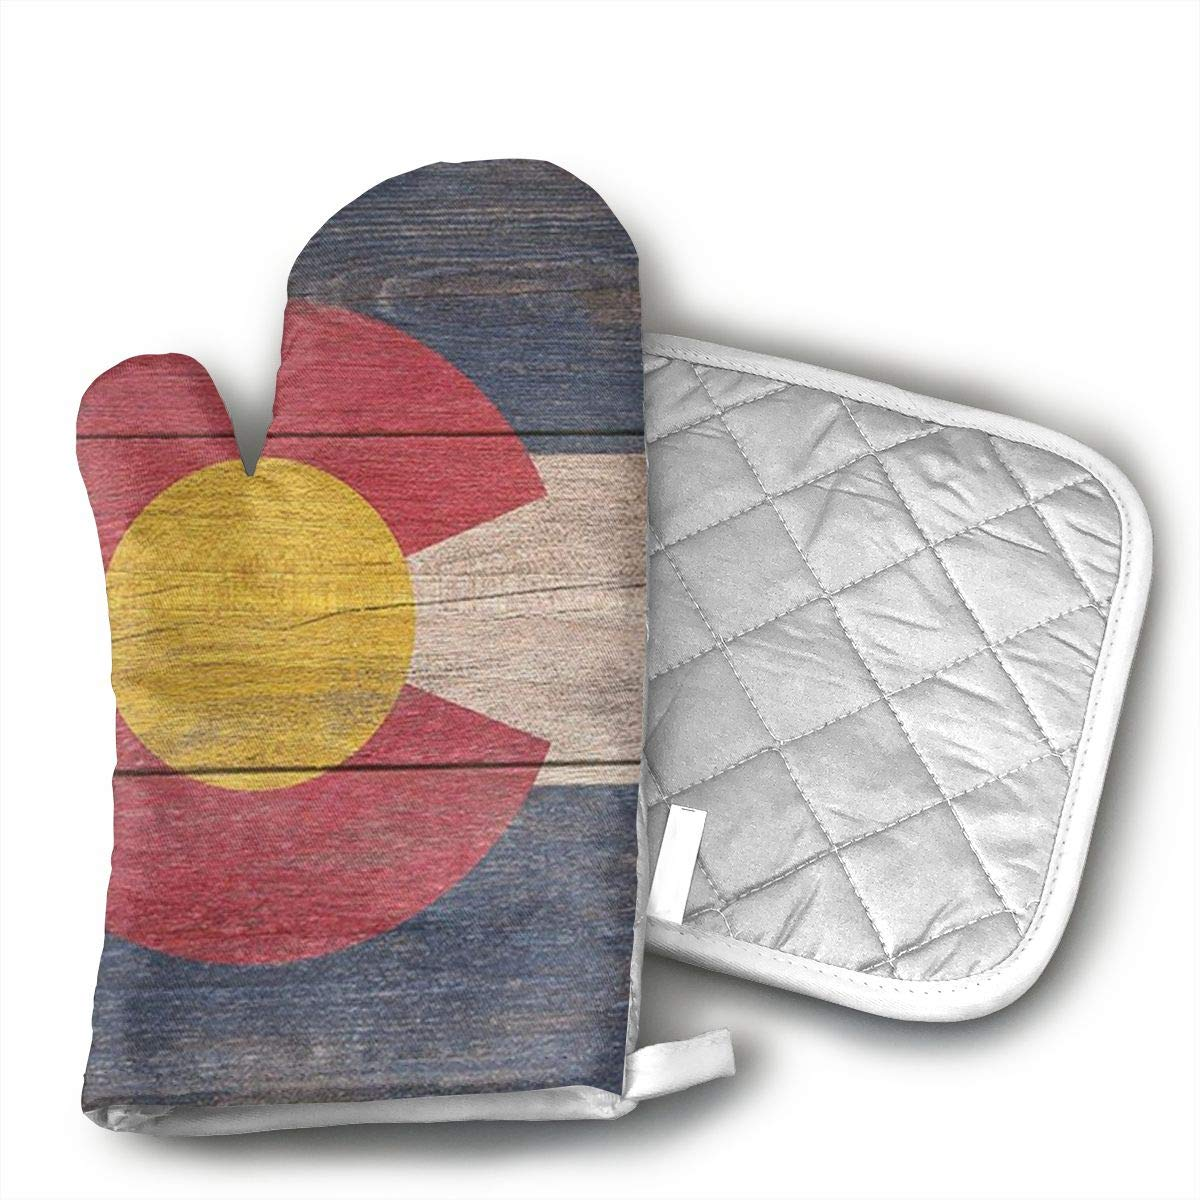 Wiqo9 Rustic Colorado State Flag Oven Mitts and Pot Holders Kitchen Mitten Cooking Gloves,Cooking, Baking, BBQ.